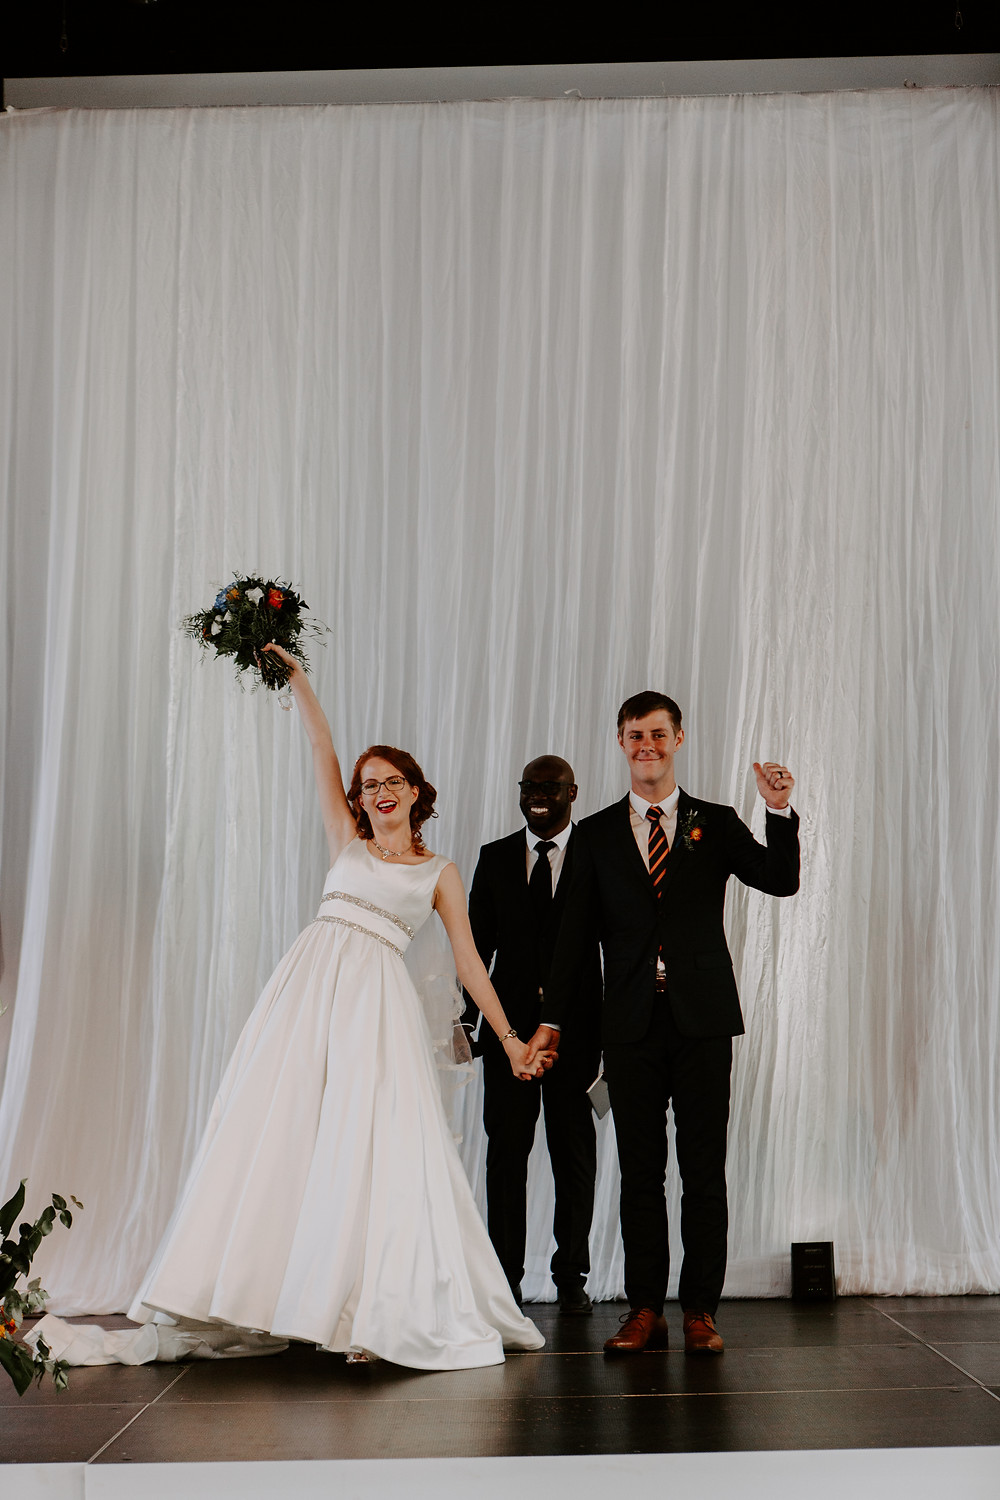 bride and groom cheer after ceremony celebrate wedding